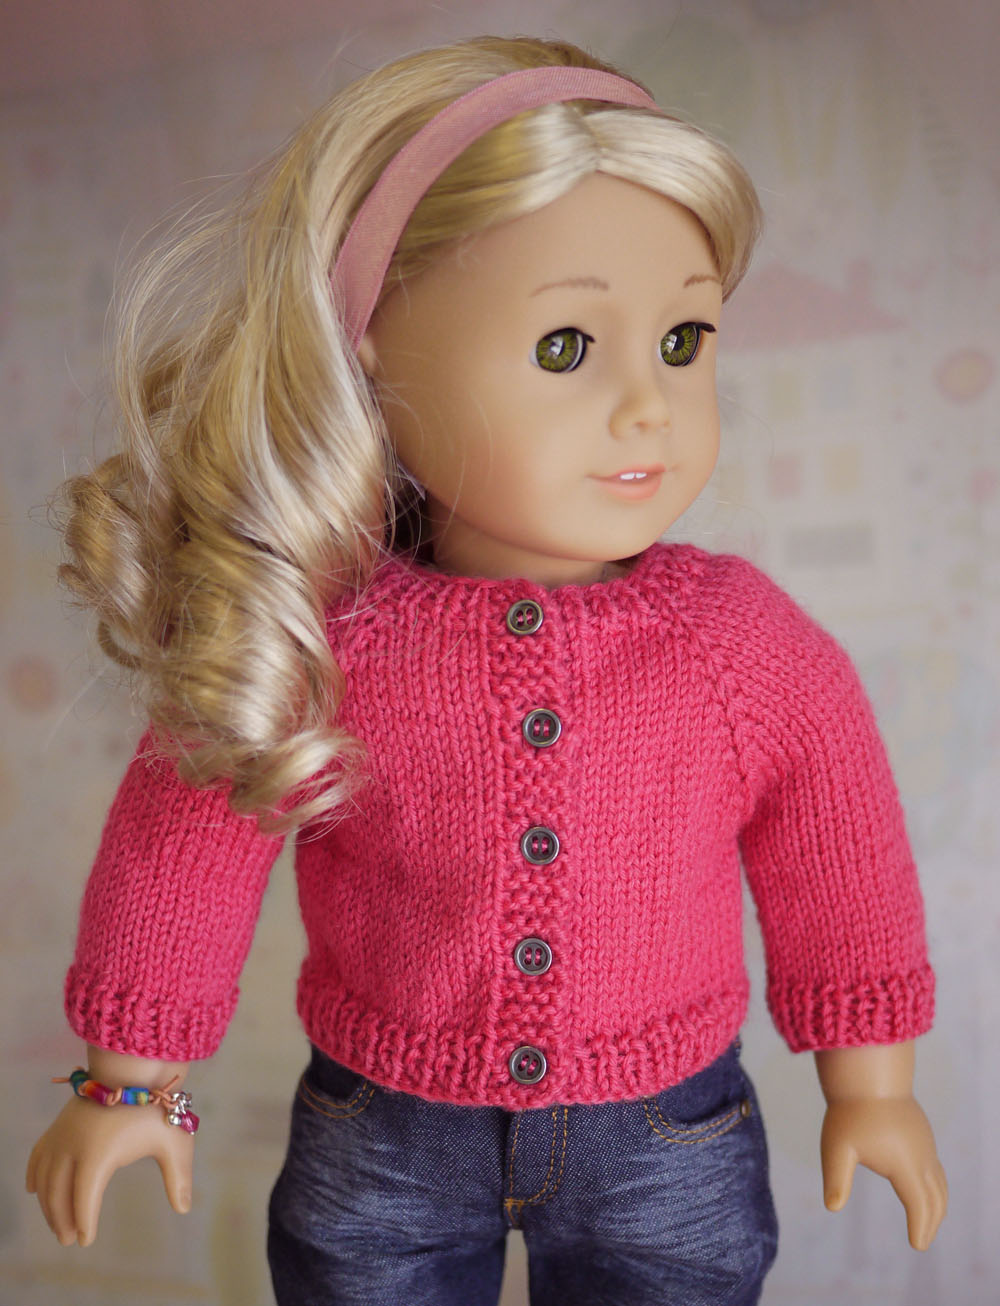 Free Knitted Doll Pattern : American Girl Doll Cardigan Sweater Knitting Pattern Cindy Rice Designs